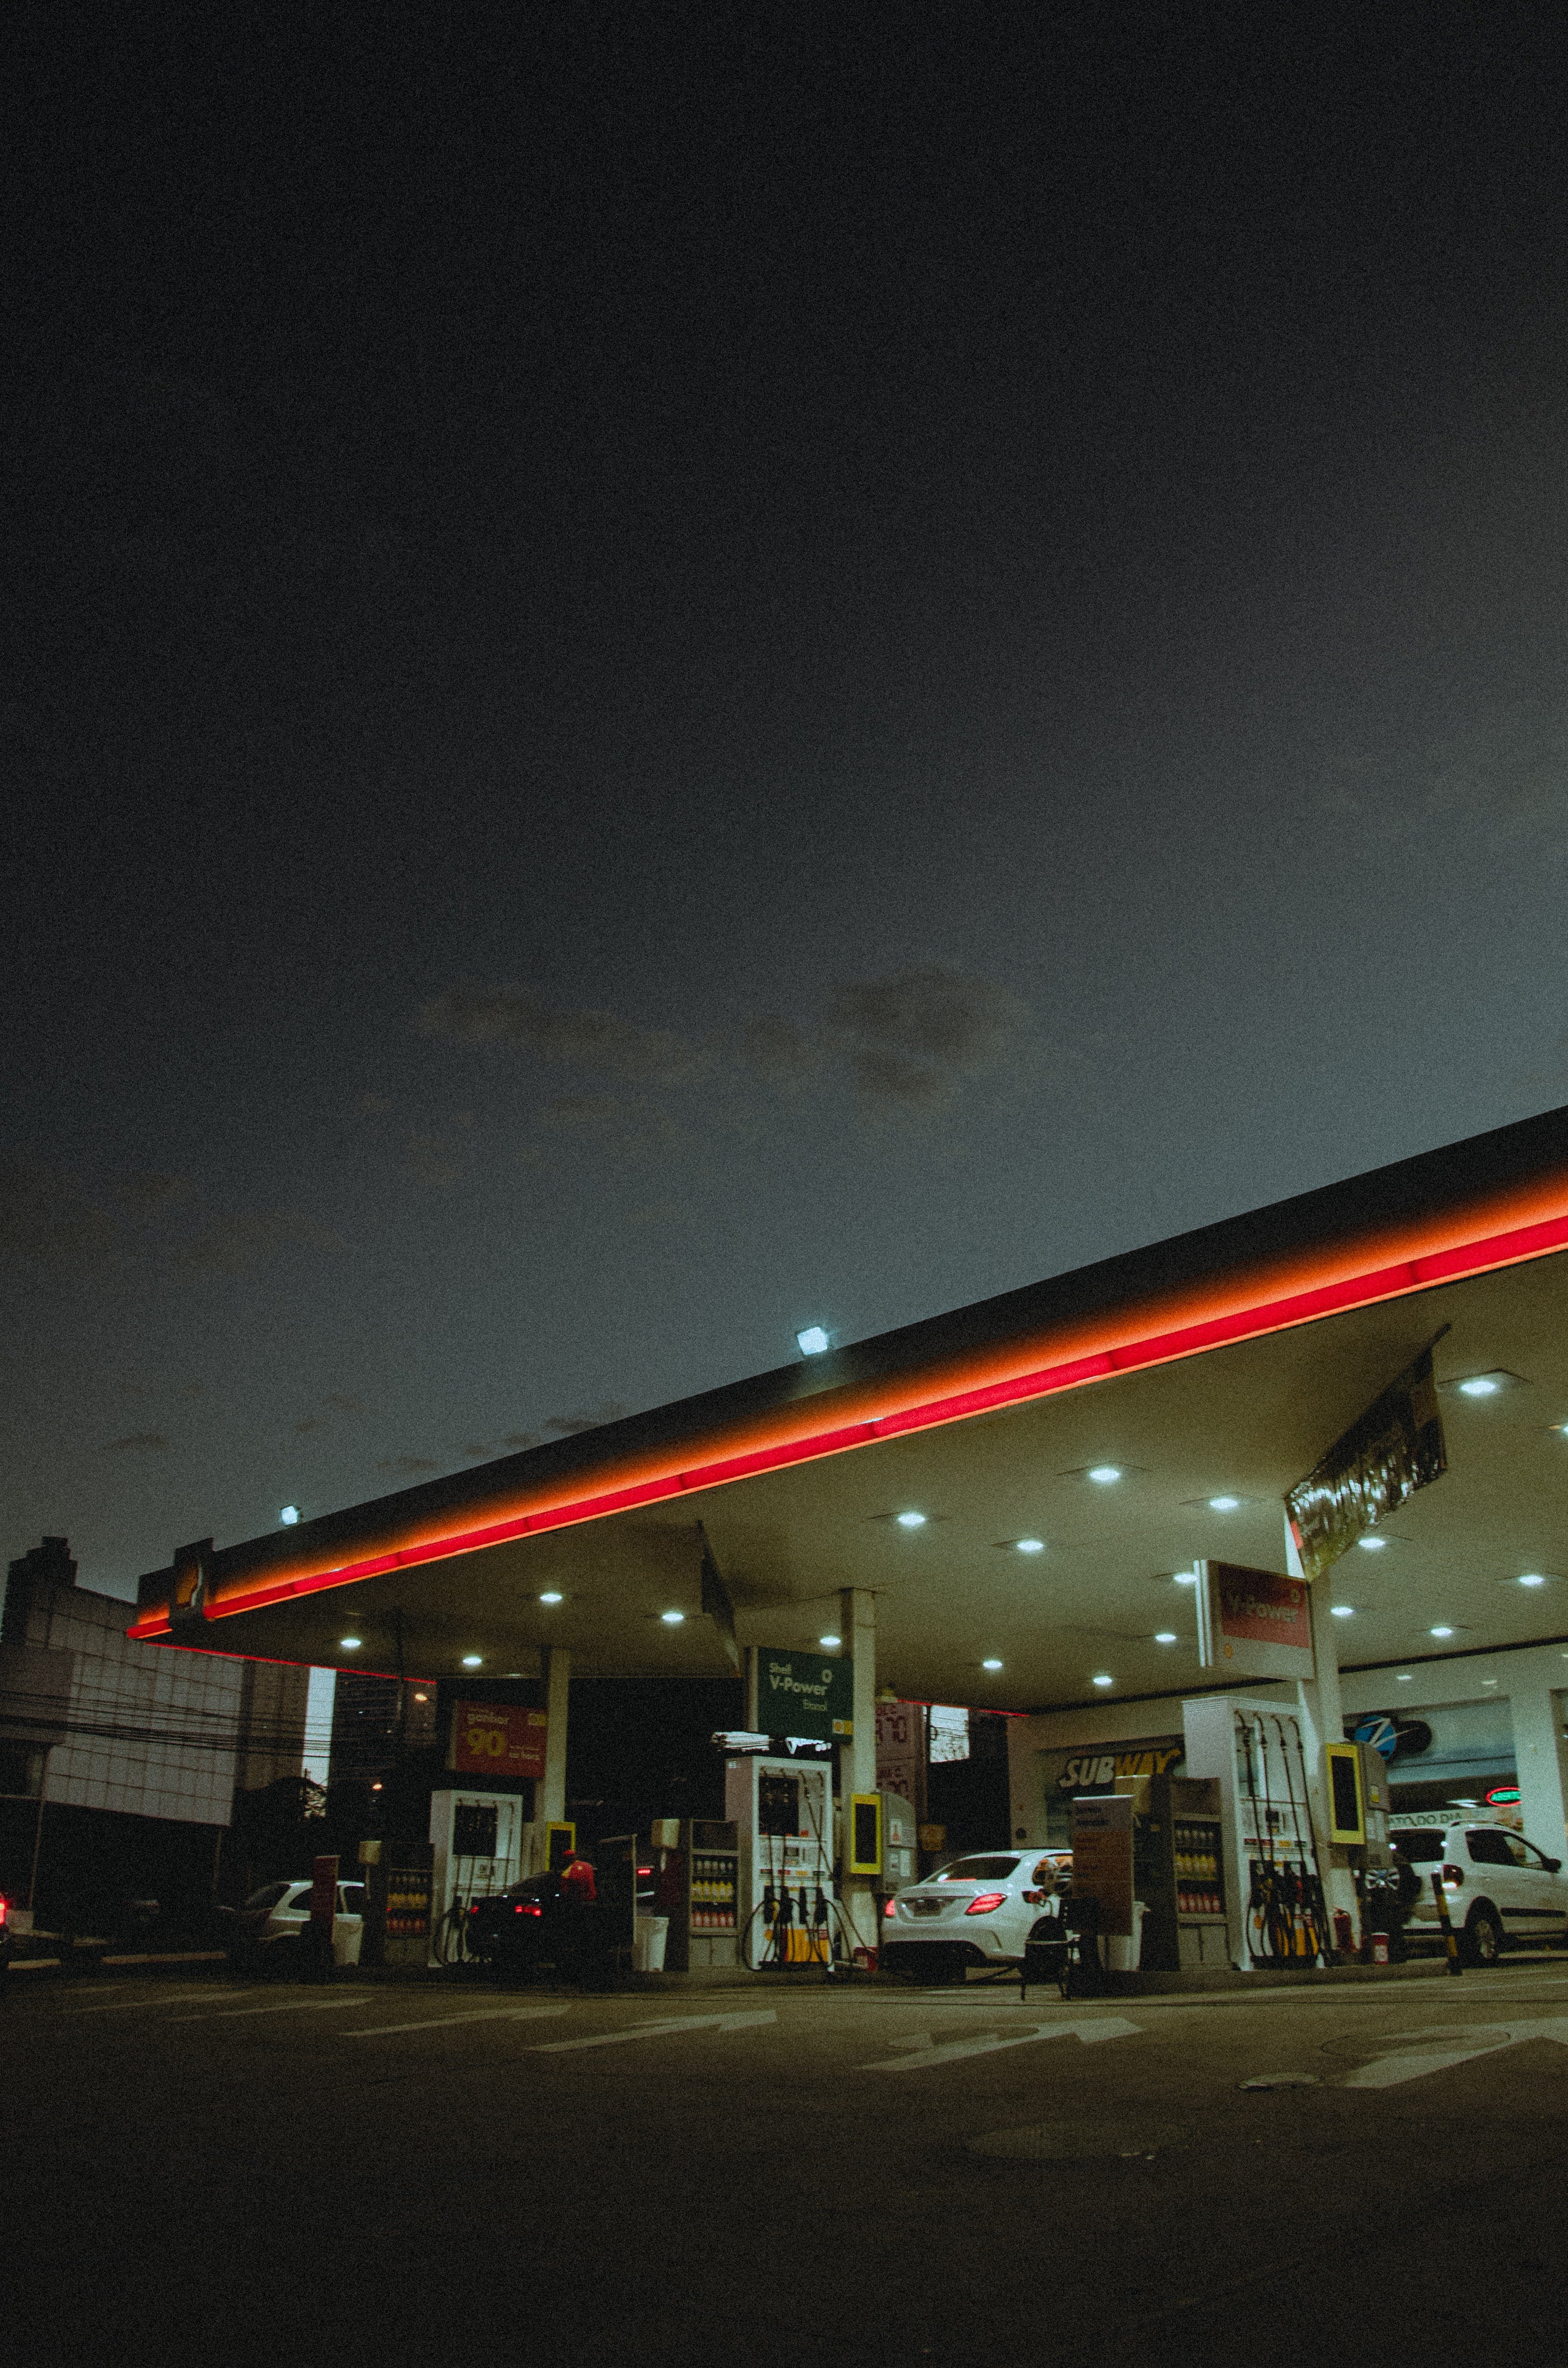 I bumped into John at a gas station—it was truly a strange coincidence | Source: Pexels